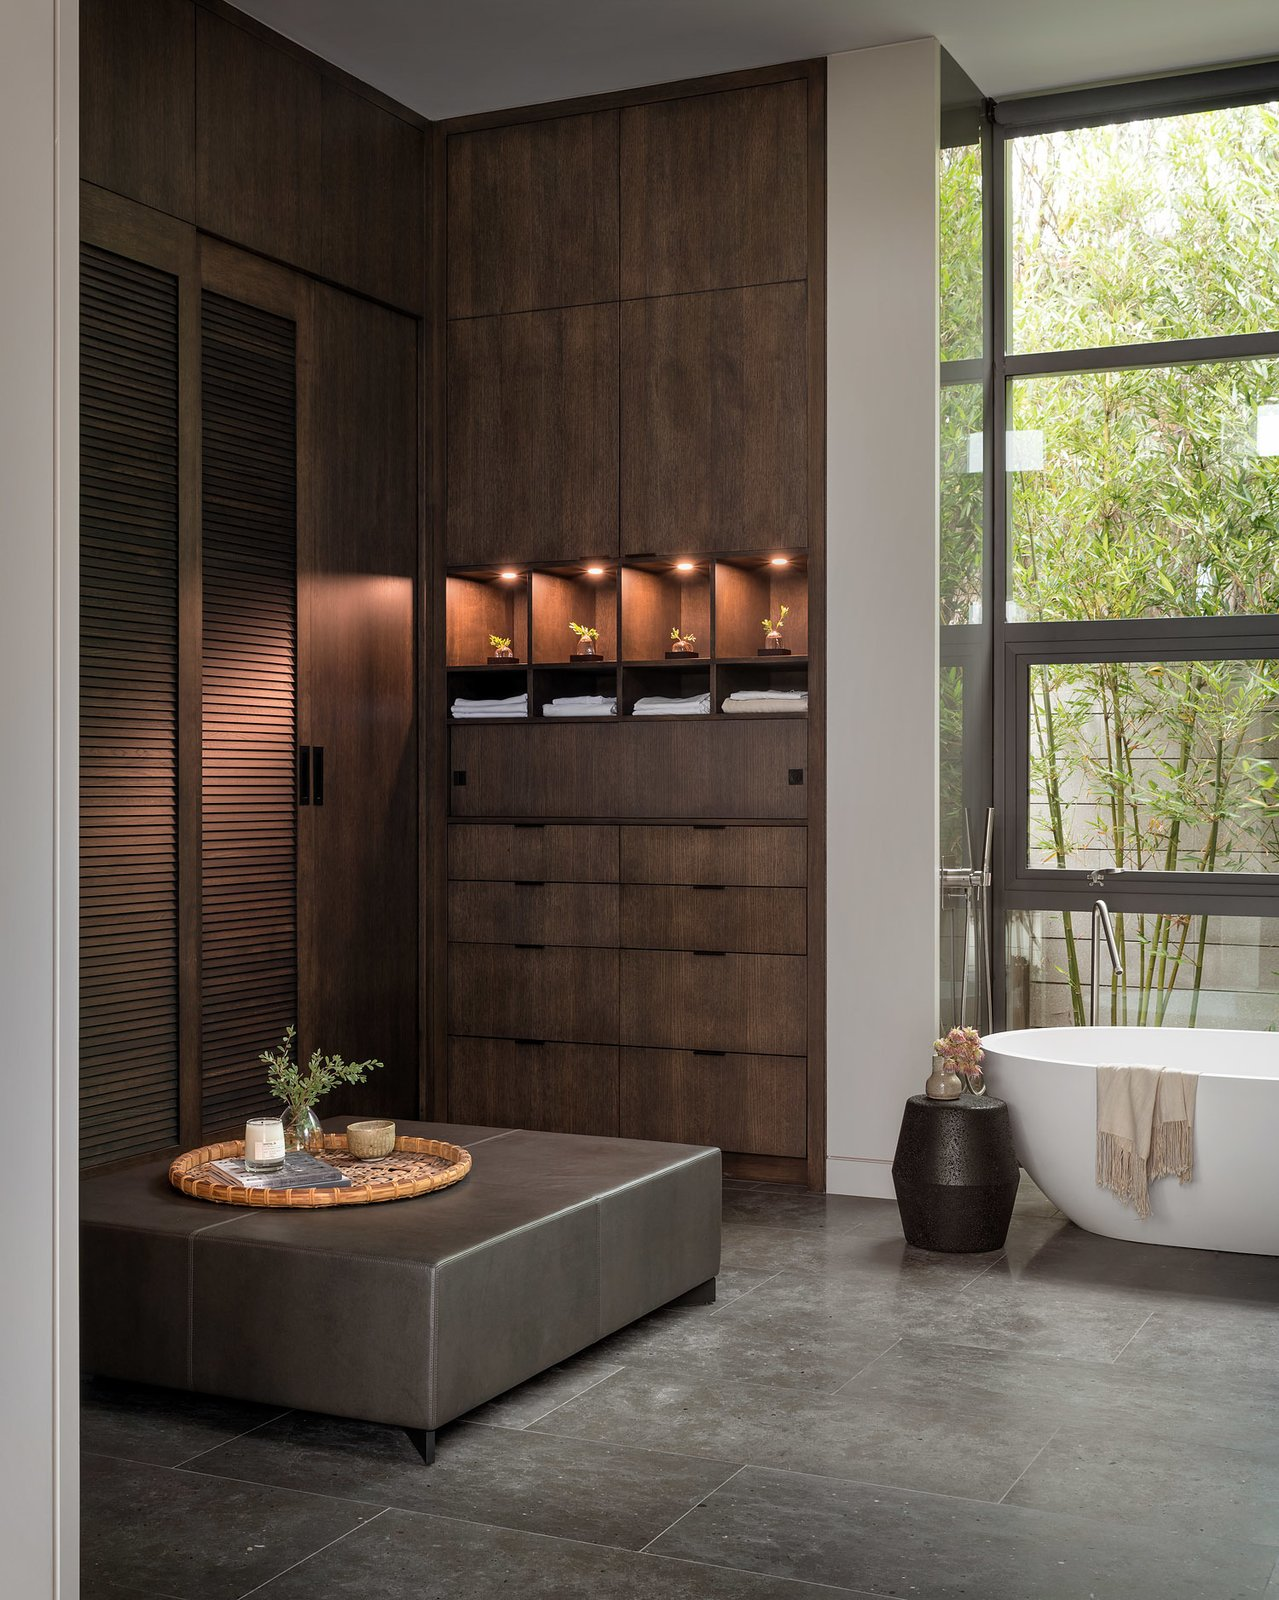 Bath Room, Soaking Tub, Limestone Floor, and Freestanding Tub Dark oak cabinetry provides plenty of storage.  Photo 19 of 23 in A Southern California Midcentury Gets a Serene, Japanese-Inspired Treatment